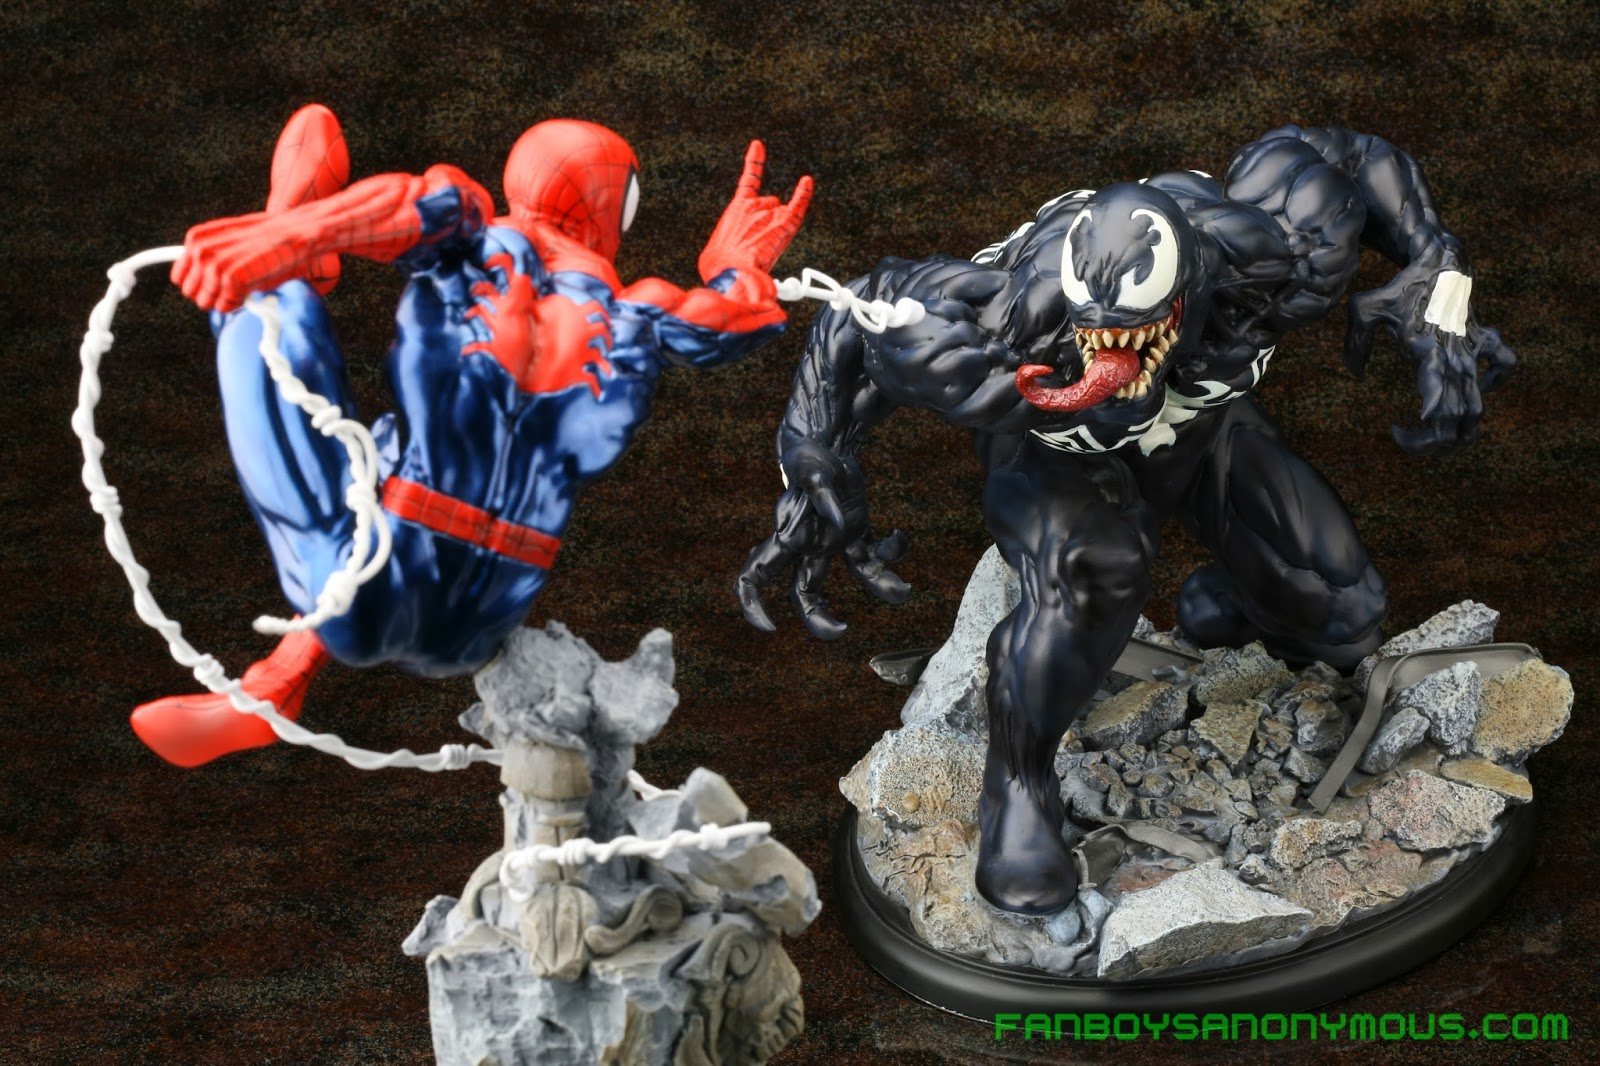 Buy Venom and Spider-Man statues, busts, and toys on Amazon and eBay